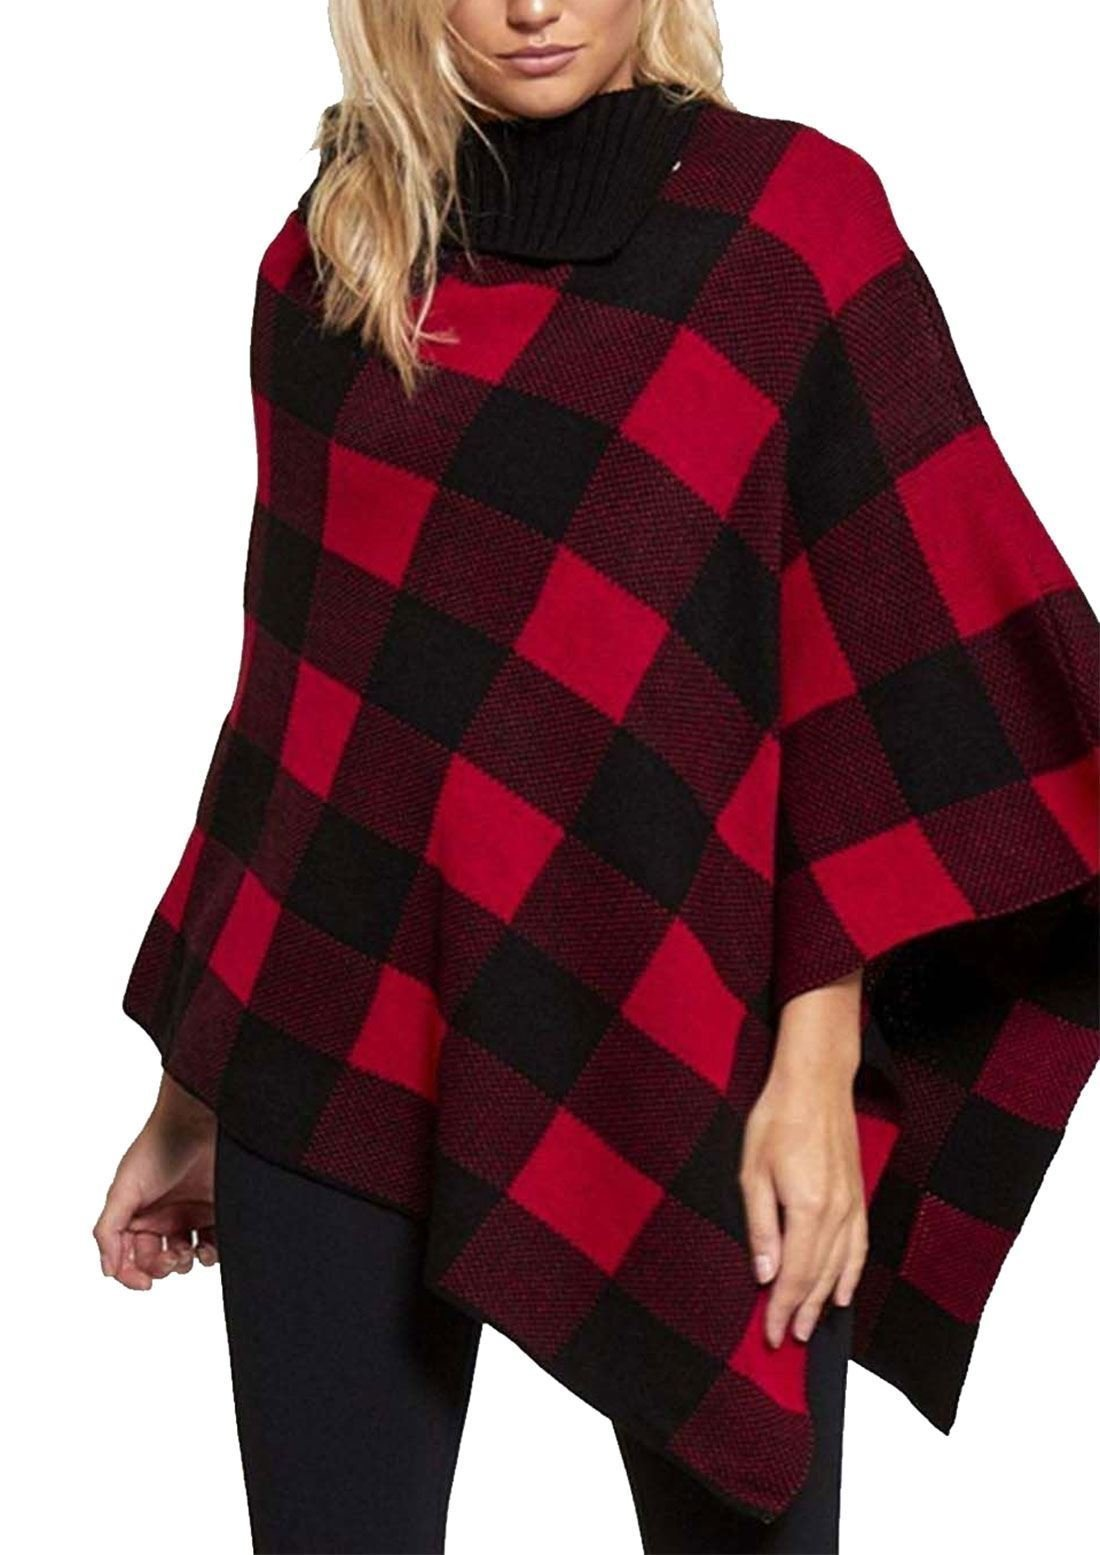 Ladies Cardigan Diamond Checked Scarf Winter Cape Shawl Wrap Knitted Poncho#(Red With Black Diamond Check Poncho#US 8#Womens)